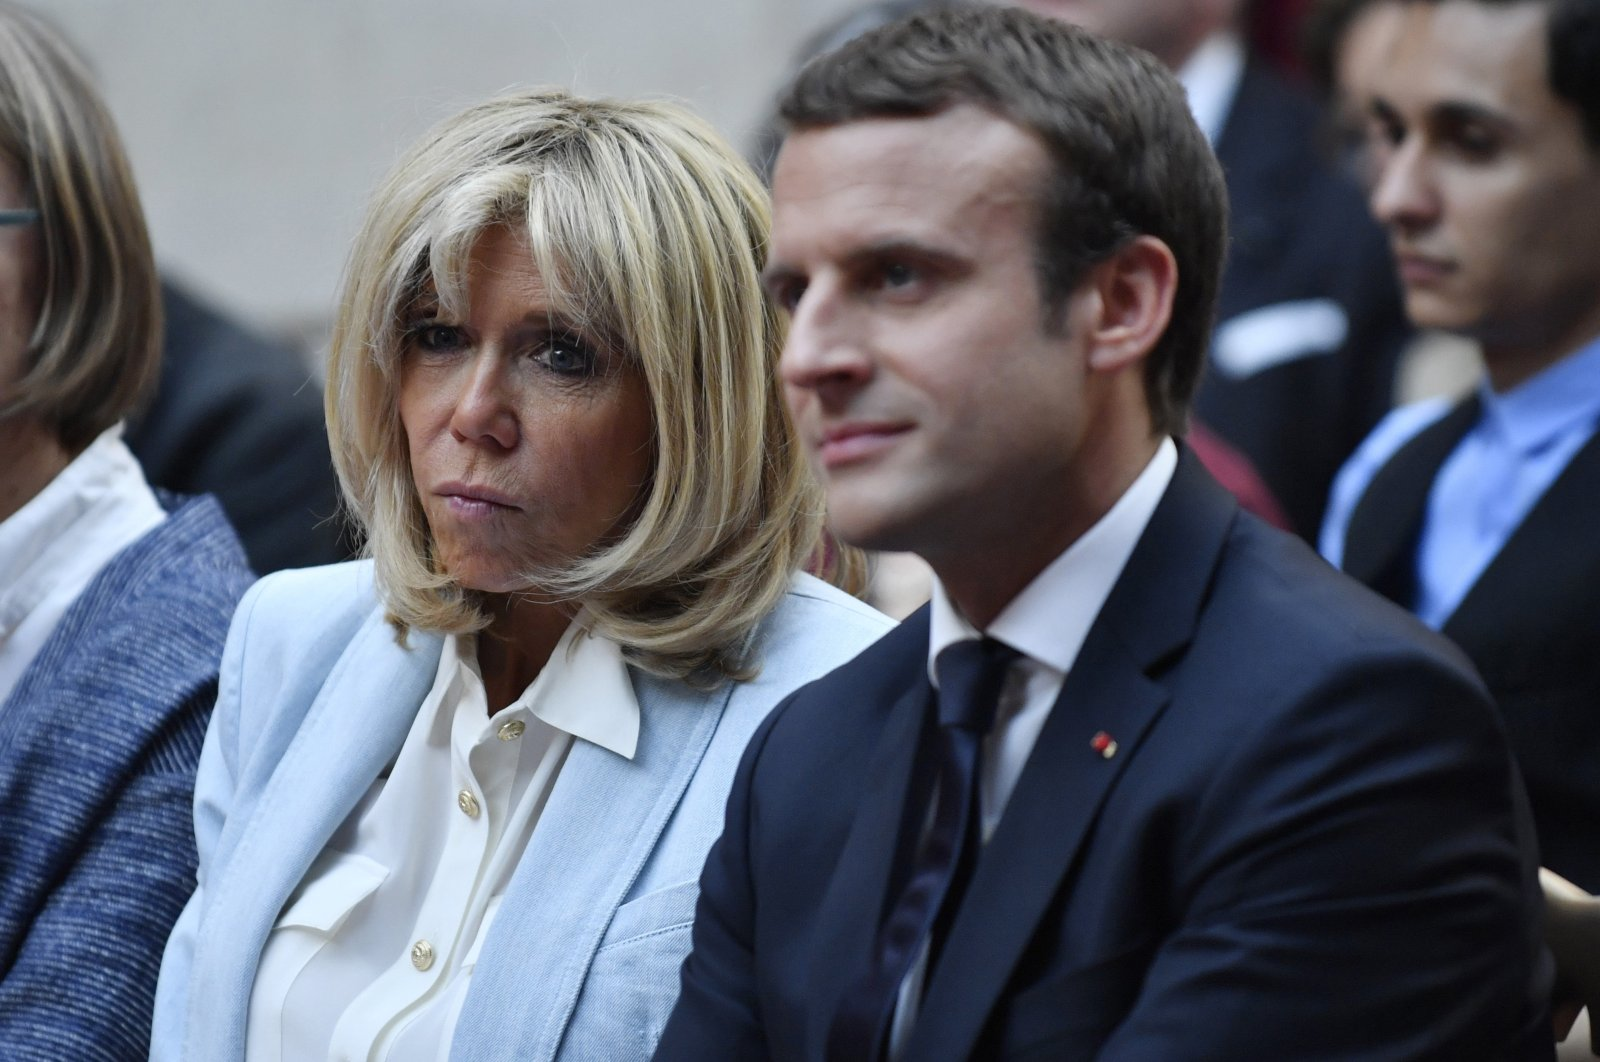 French First Lady Brigitte Macron and French President Emmanuel Macron attend a concert from the Pierre Claver Association at the Elysee Palace in Paris, France, on July 25, 2017. (AP Photo)